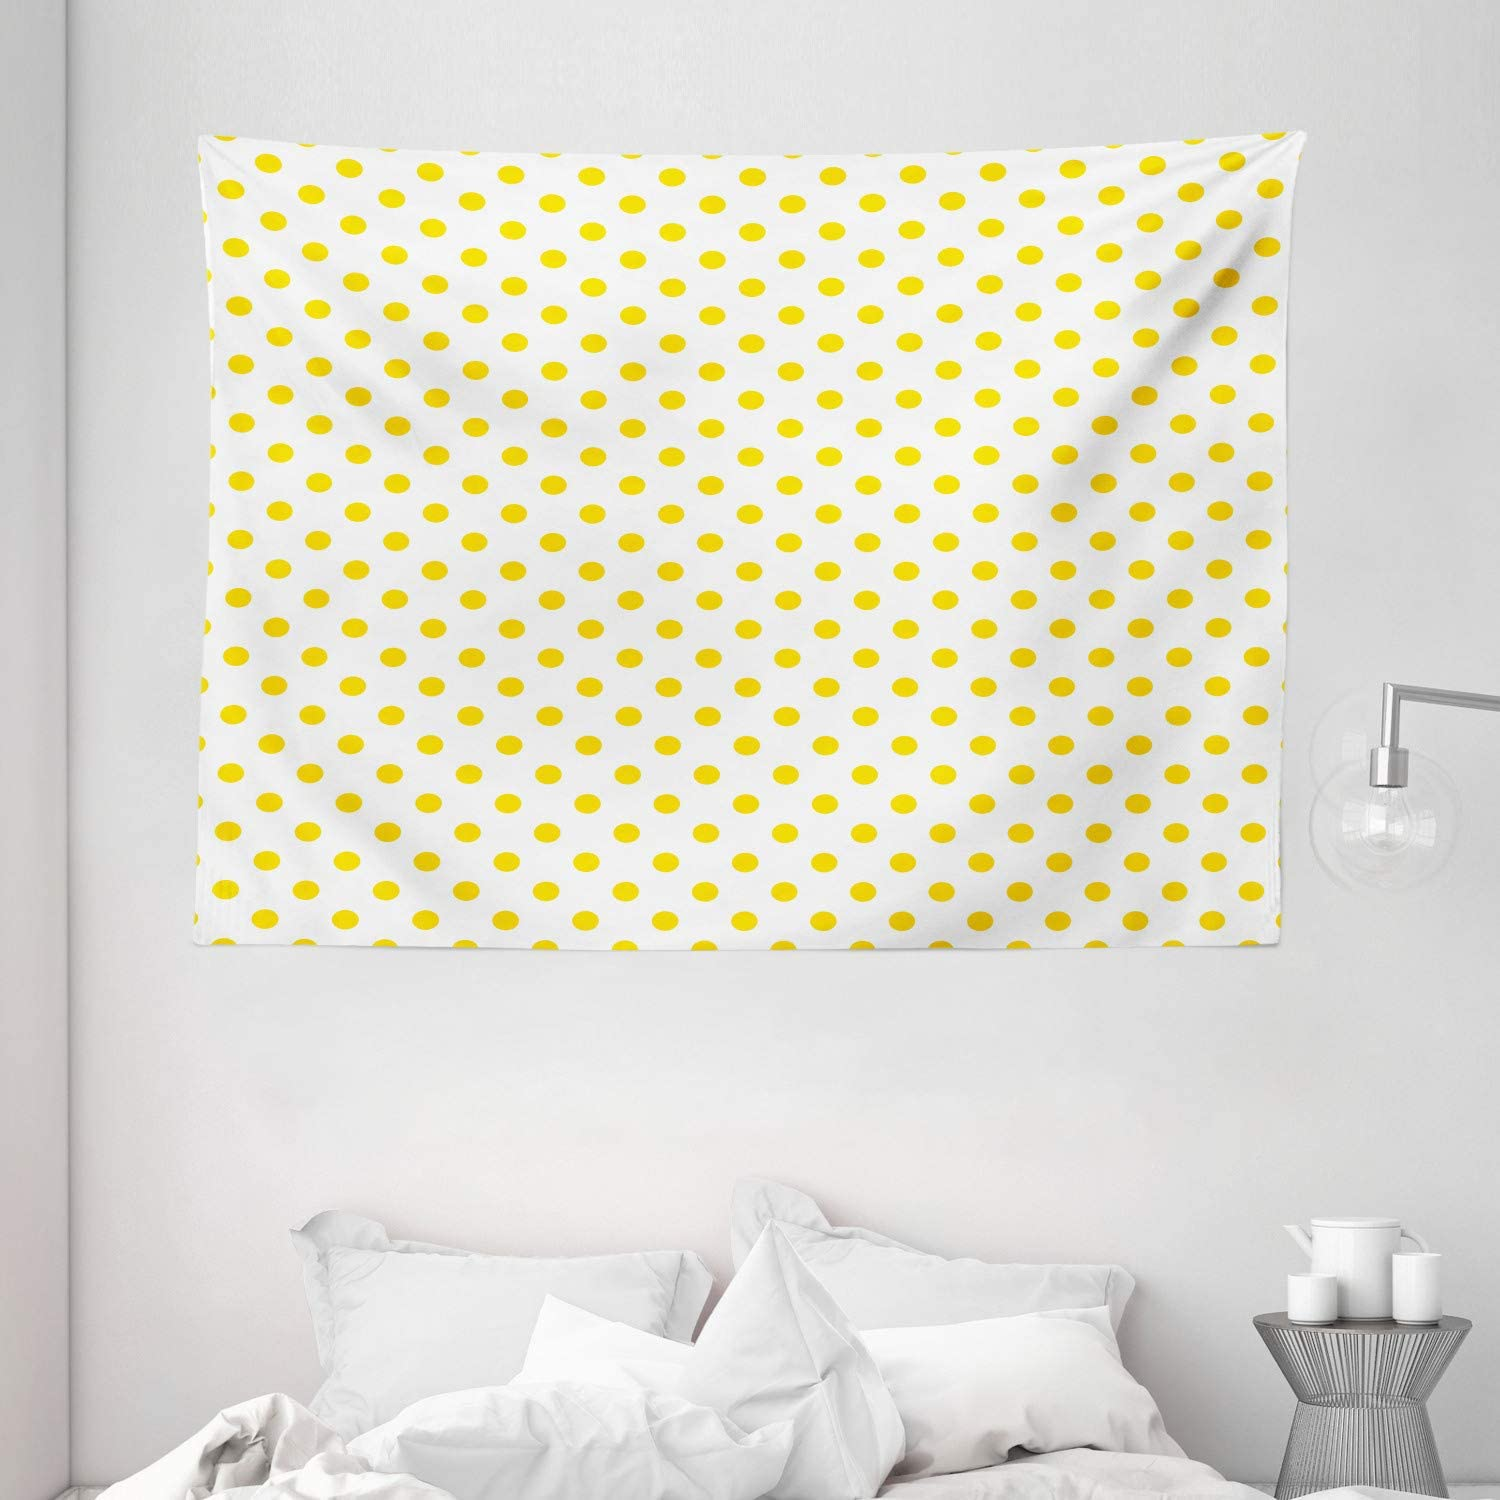 Amazon Com Ambesonne Yellow Tapestry Picnic Like 50s 60s 70s Retro Themed Yellow Spotted White Pattern Print Wide Wall Hanging For Bedroom Living Room Dorm 80 X 60 Yellow And White Home